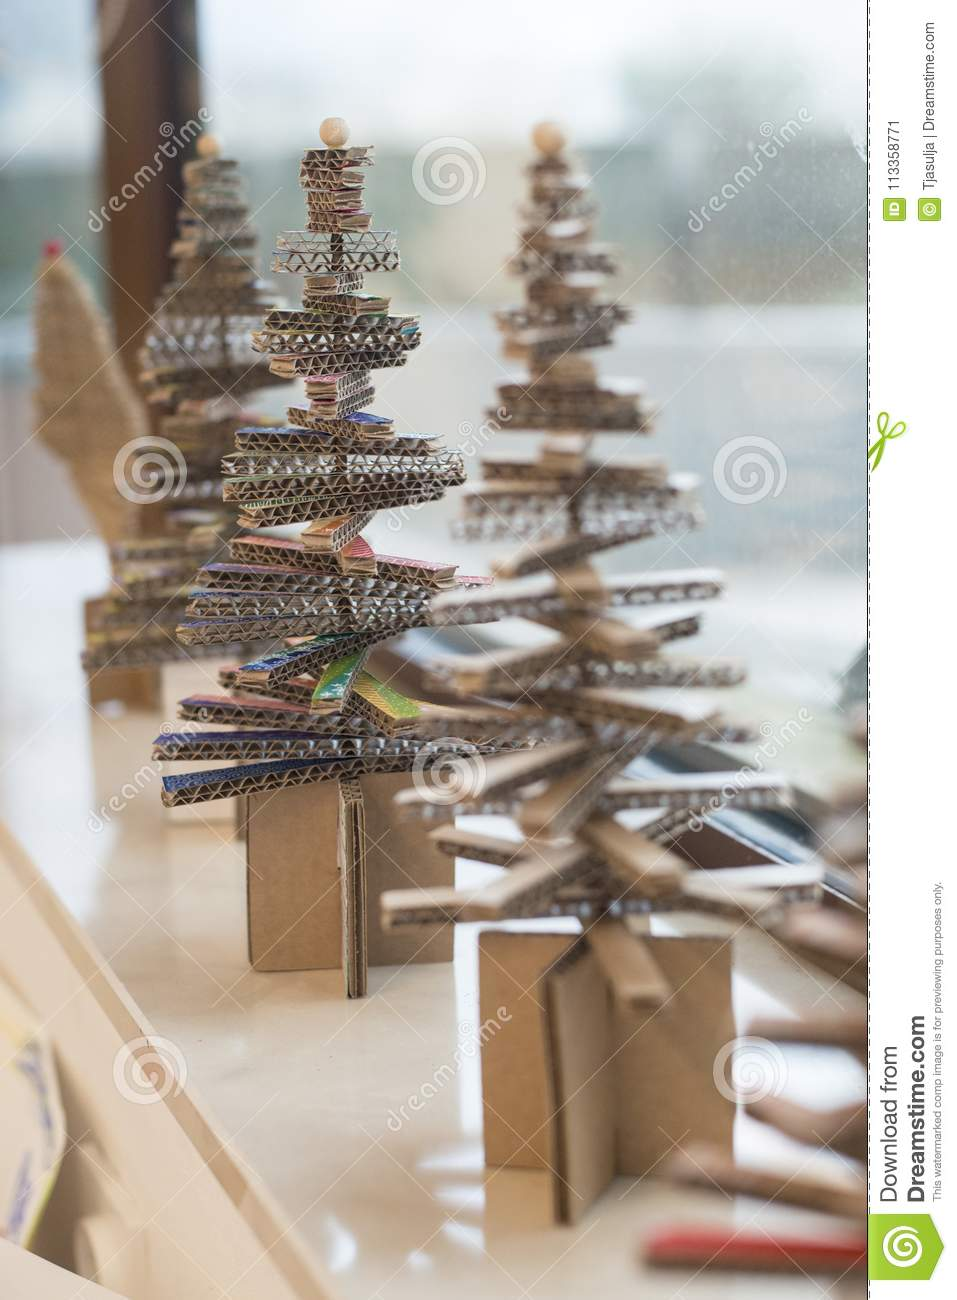 Making Little Christmas Tree Of Cardboard Stock Image Image Of